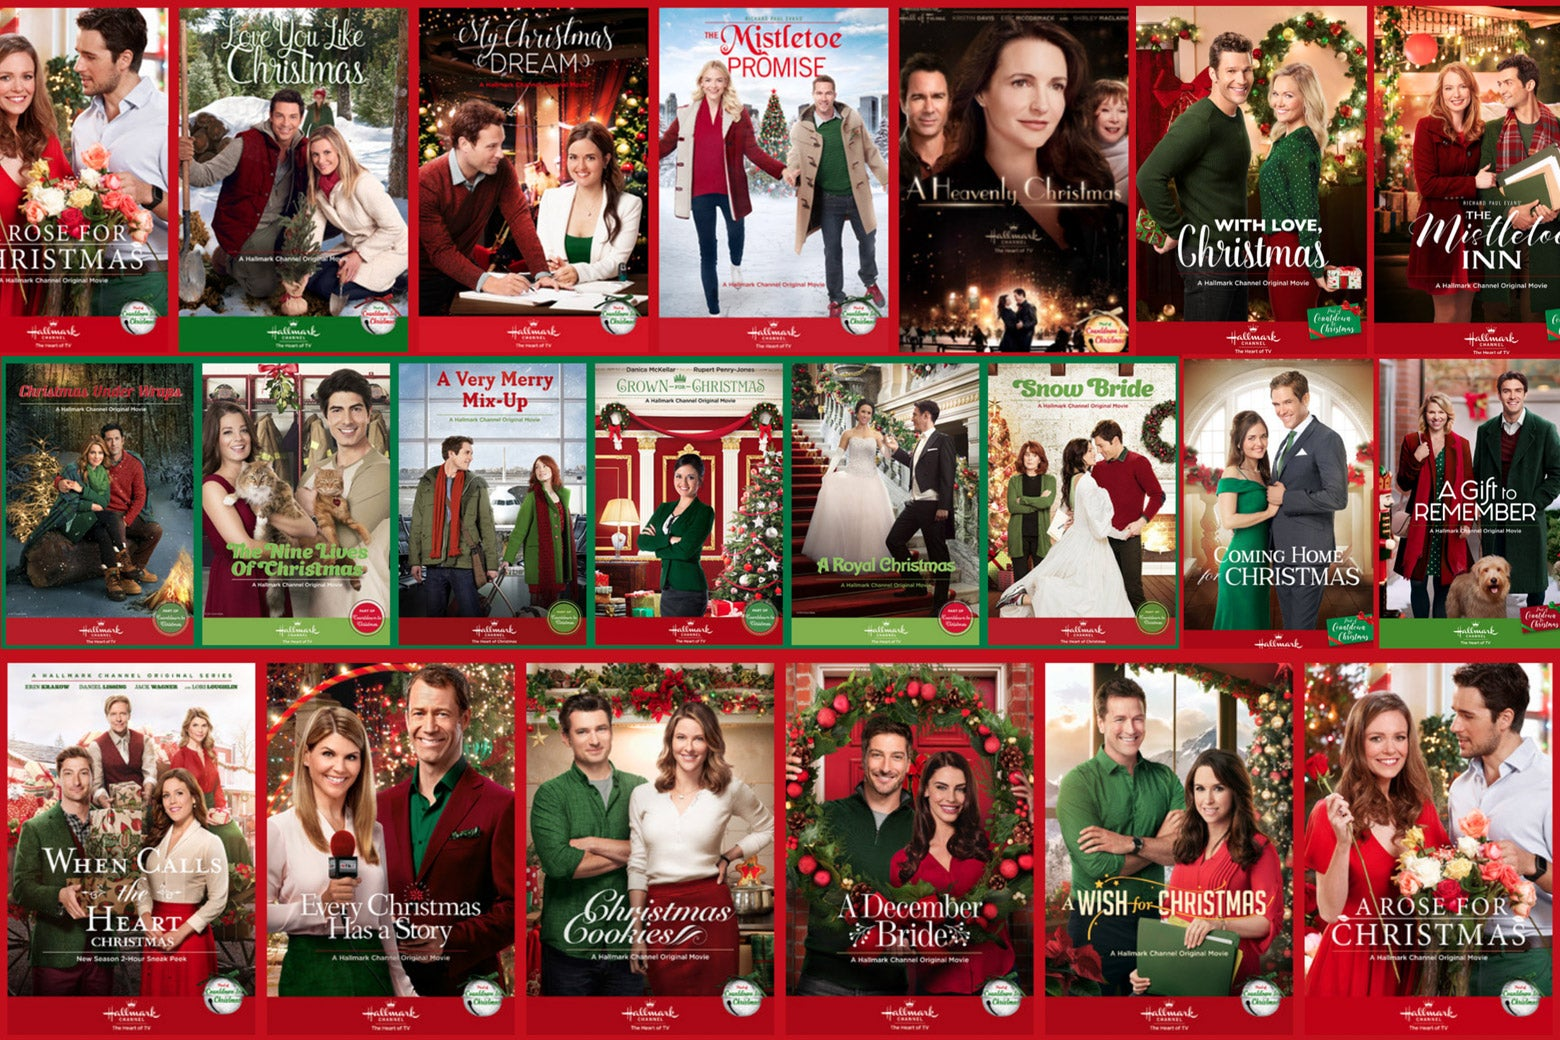 Hallmark holiday movies.